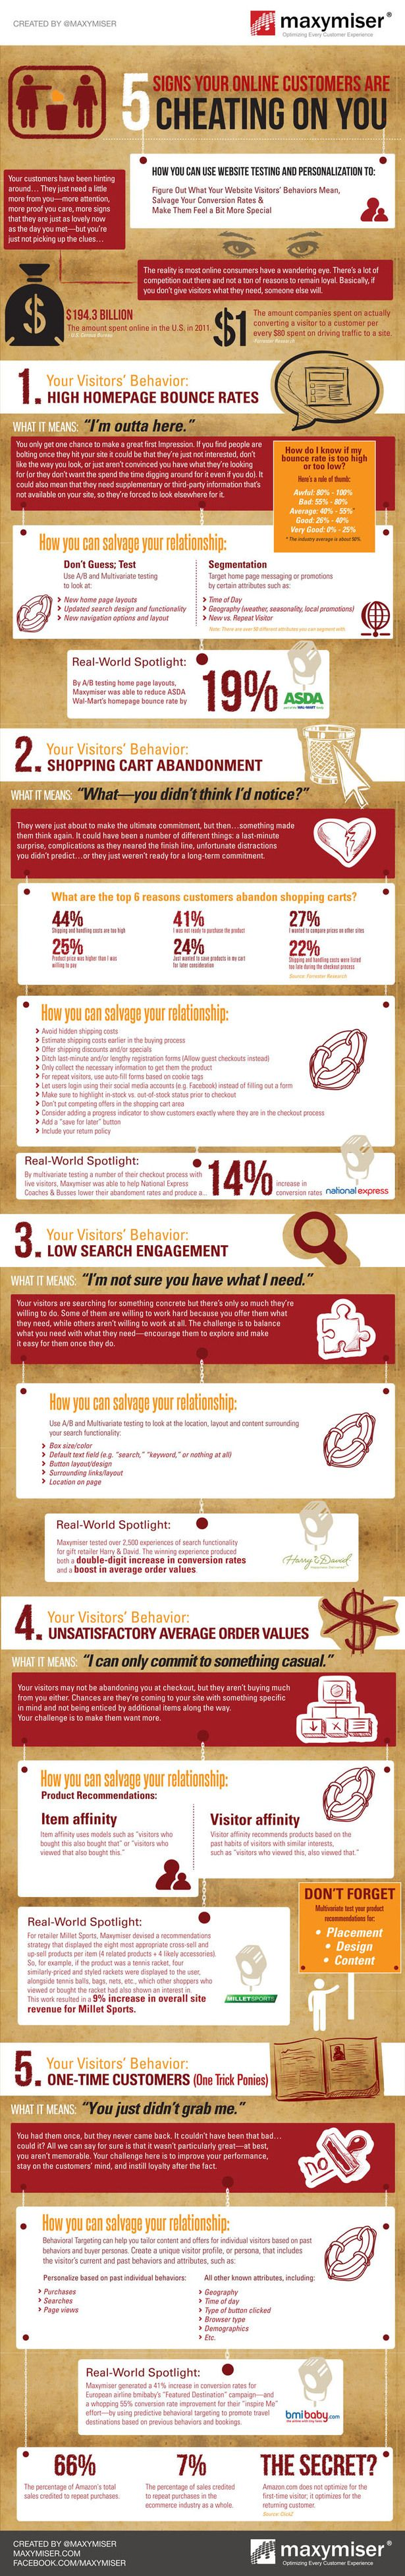 Are your online customers cheating on you? #Infographic #ecommerce